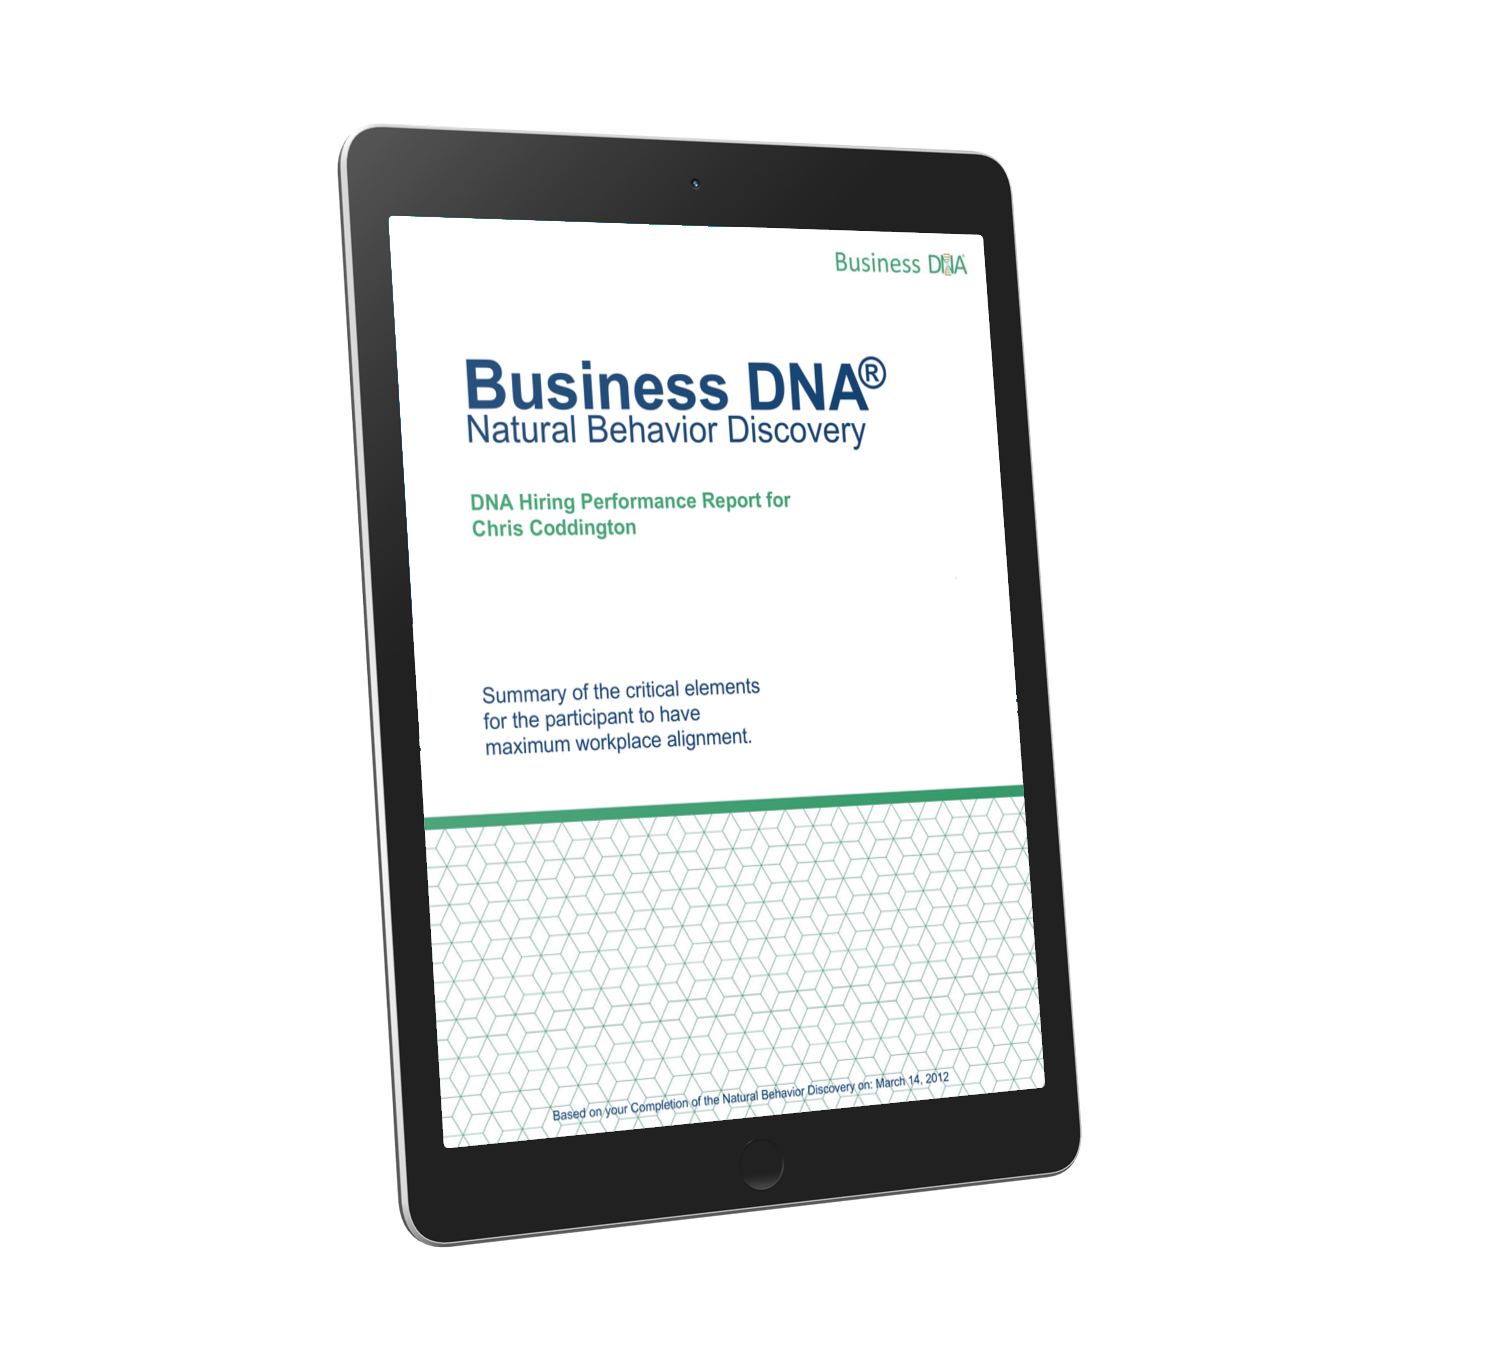 The Business DNA Hiring Report for Leader and Employee Selection and Role Alignment